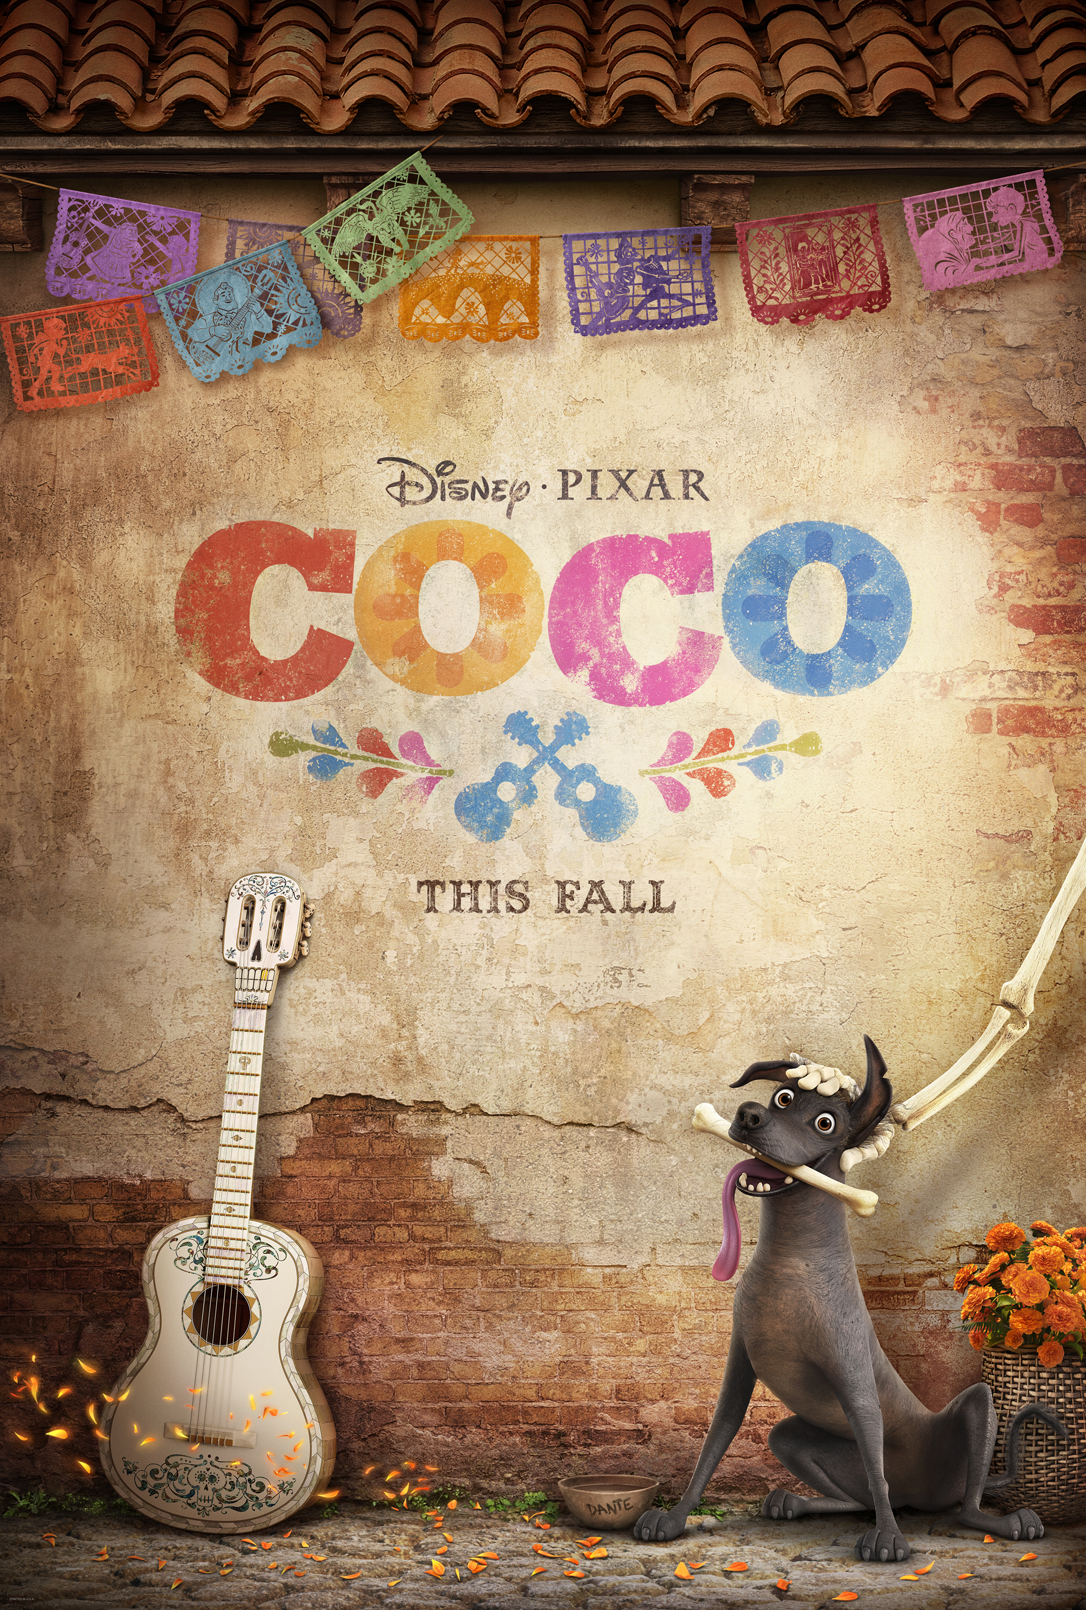 Why I Will Be Sitting In The Front Row For Disney Pixar's COCO